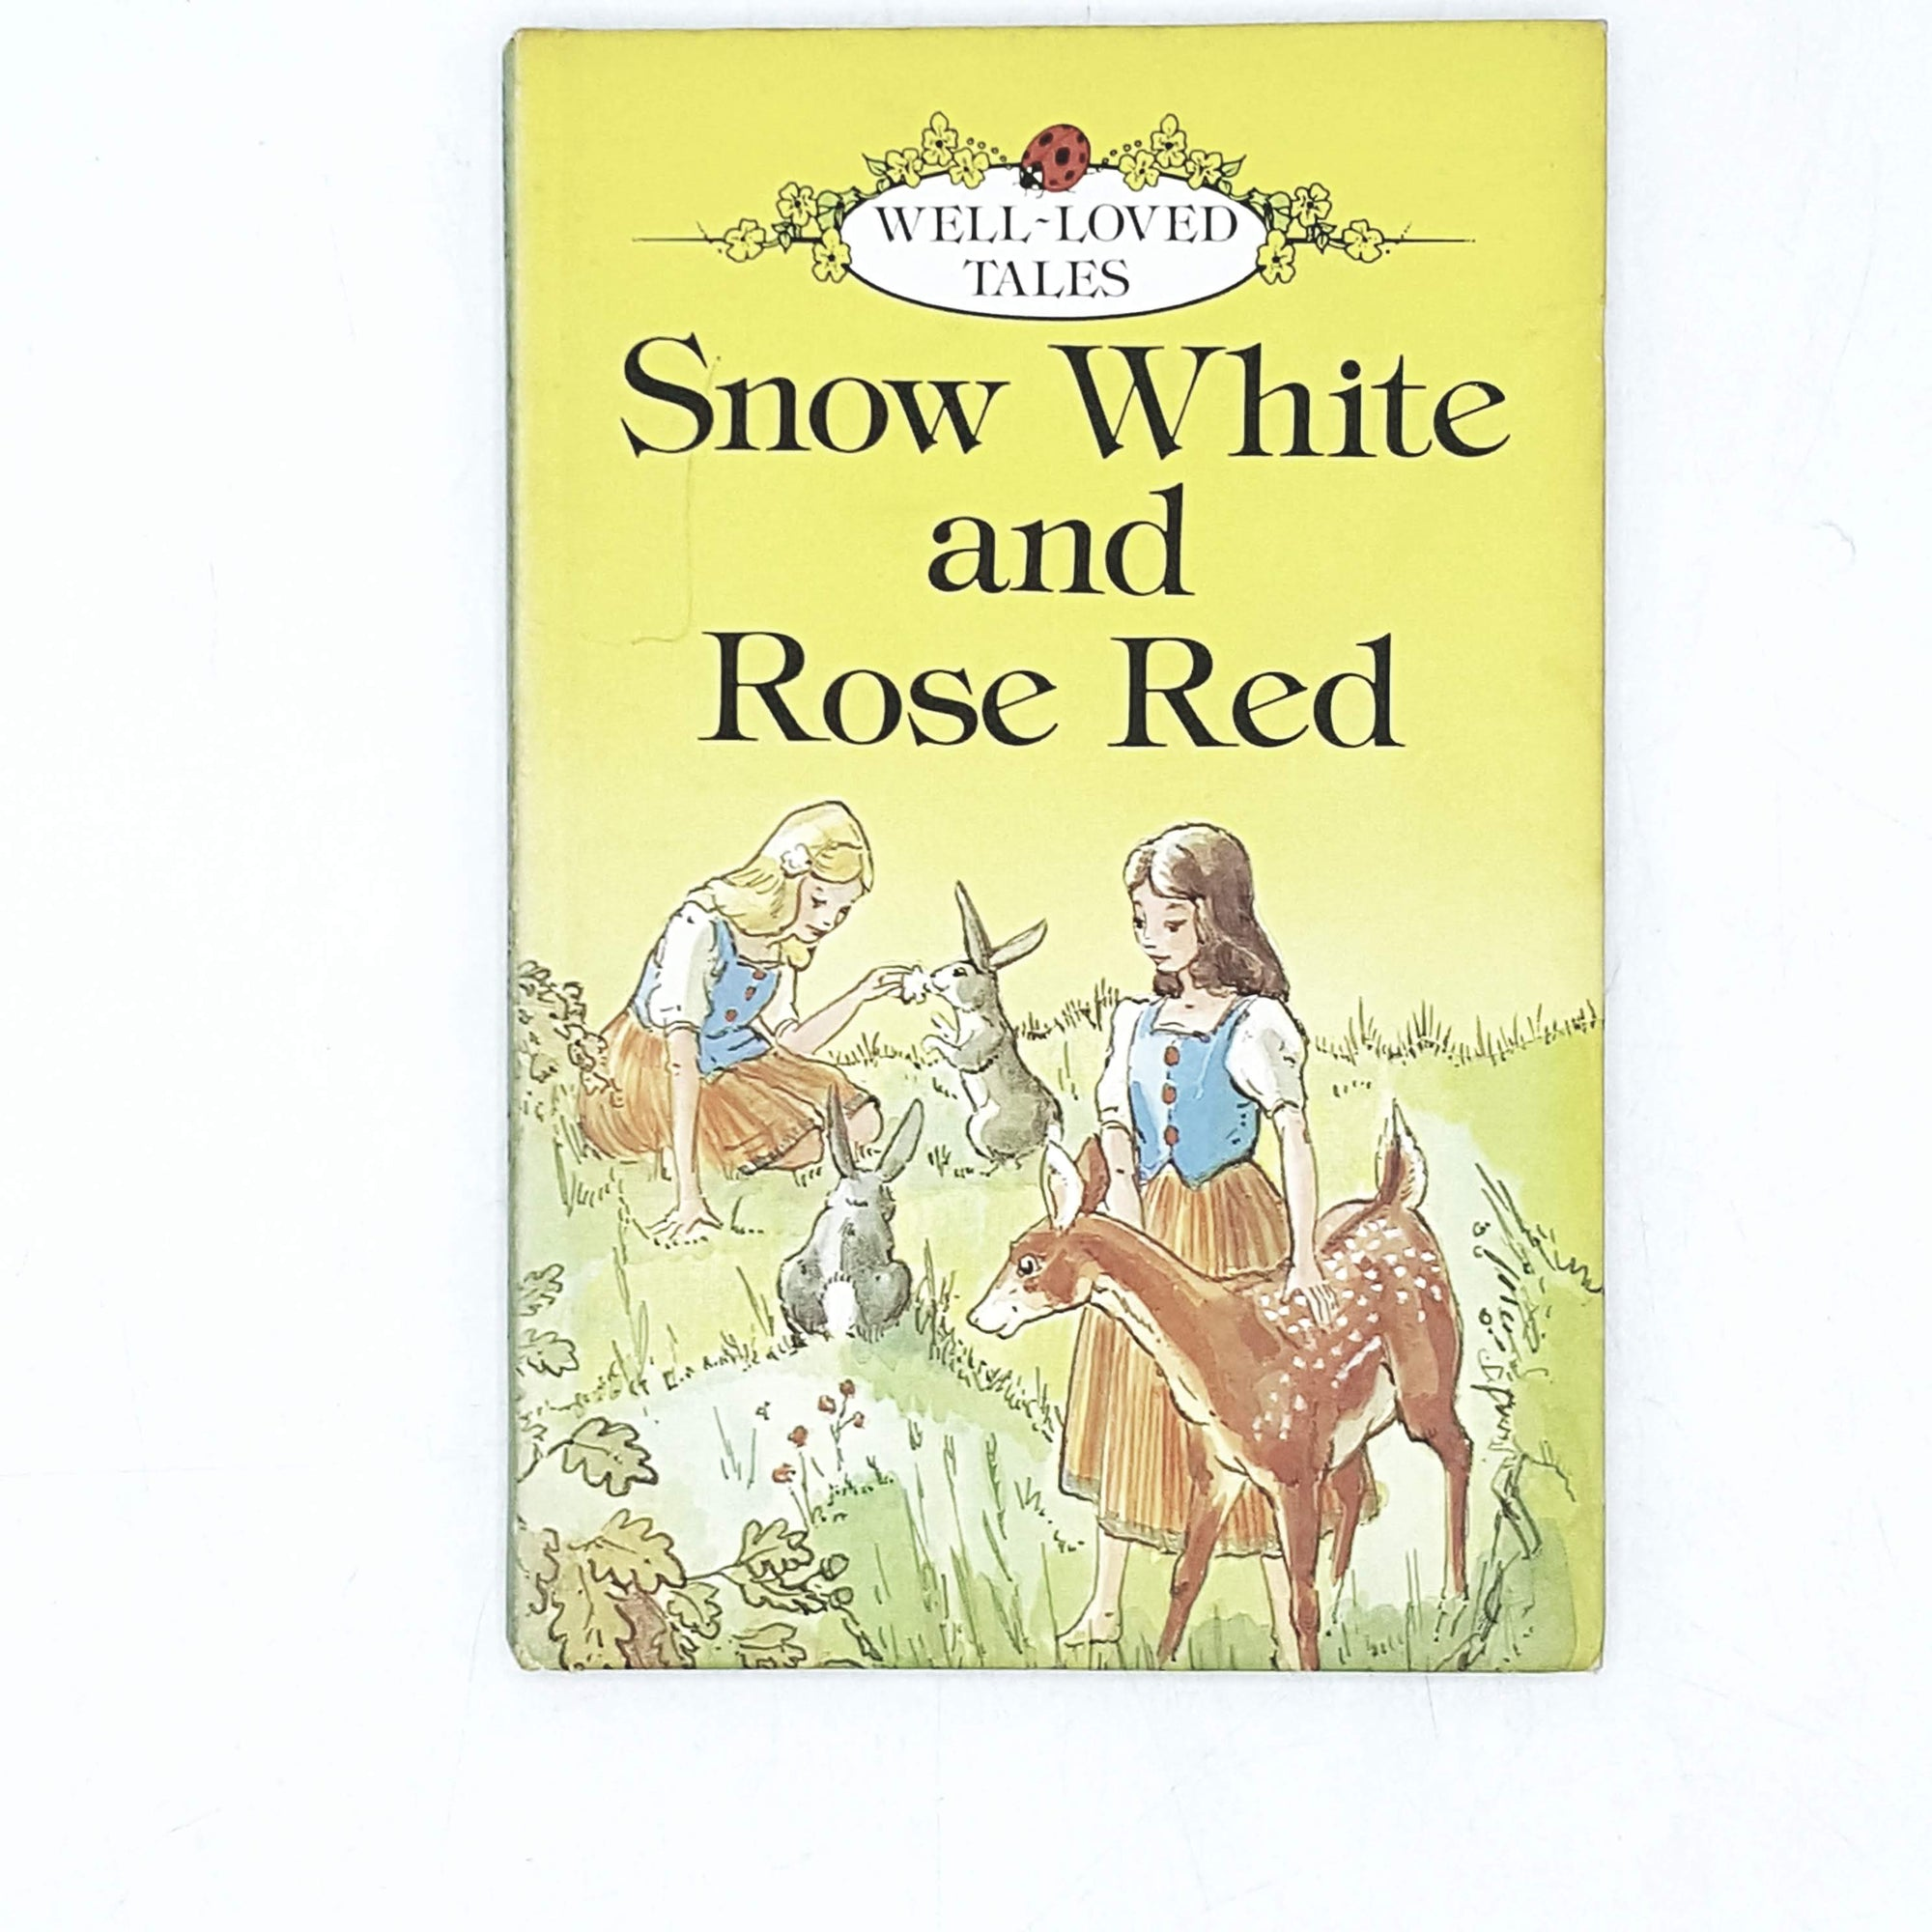 vintage-ladybird-snow-white-and-rose-red-1979-kindergarten-books-country-house-library-kindergarten-books-country-house-library